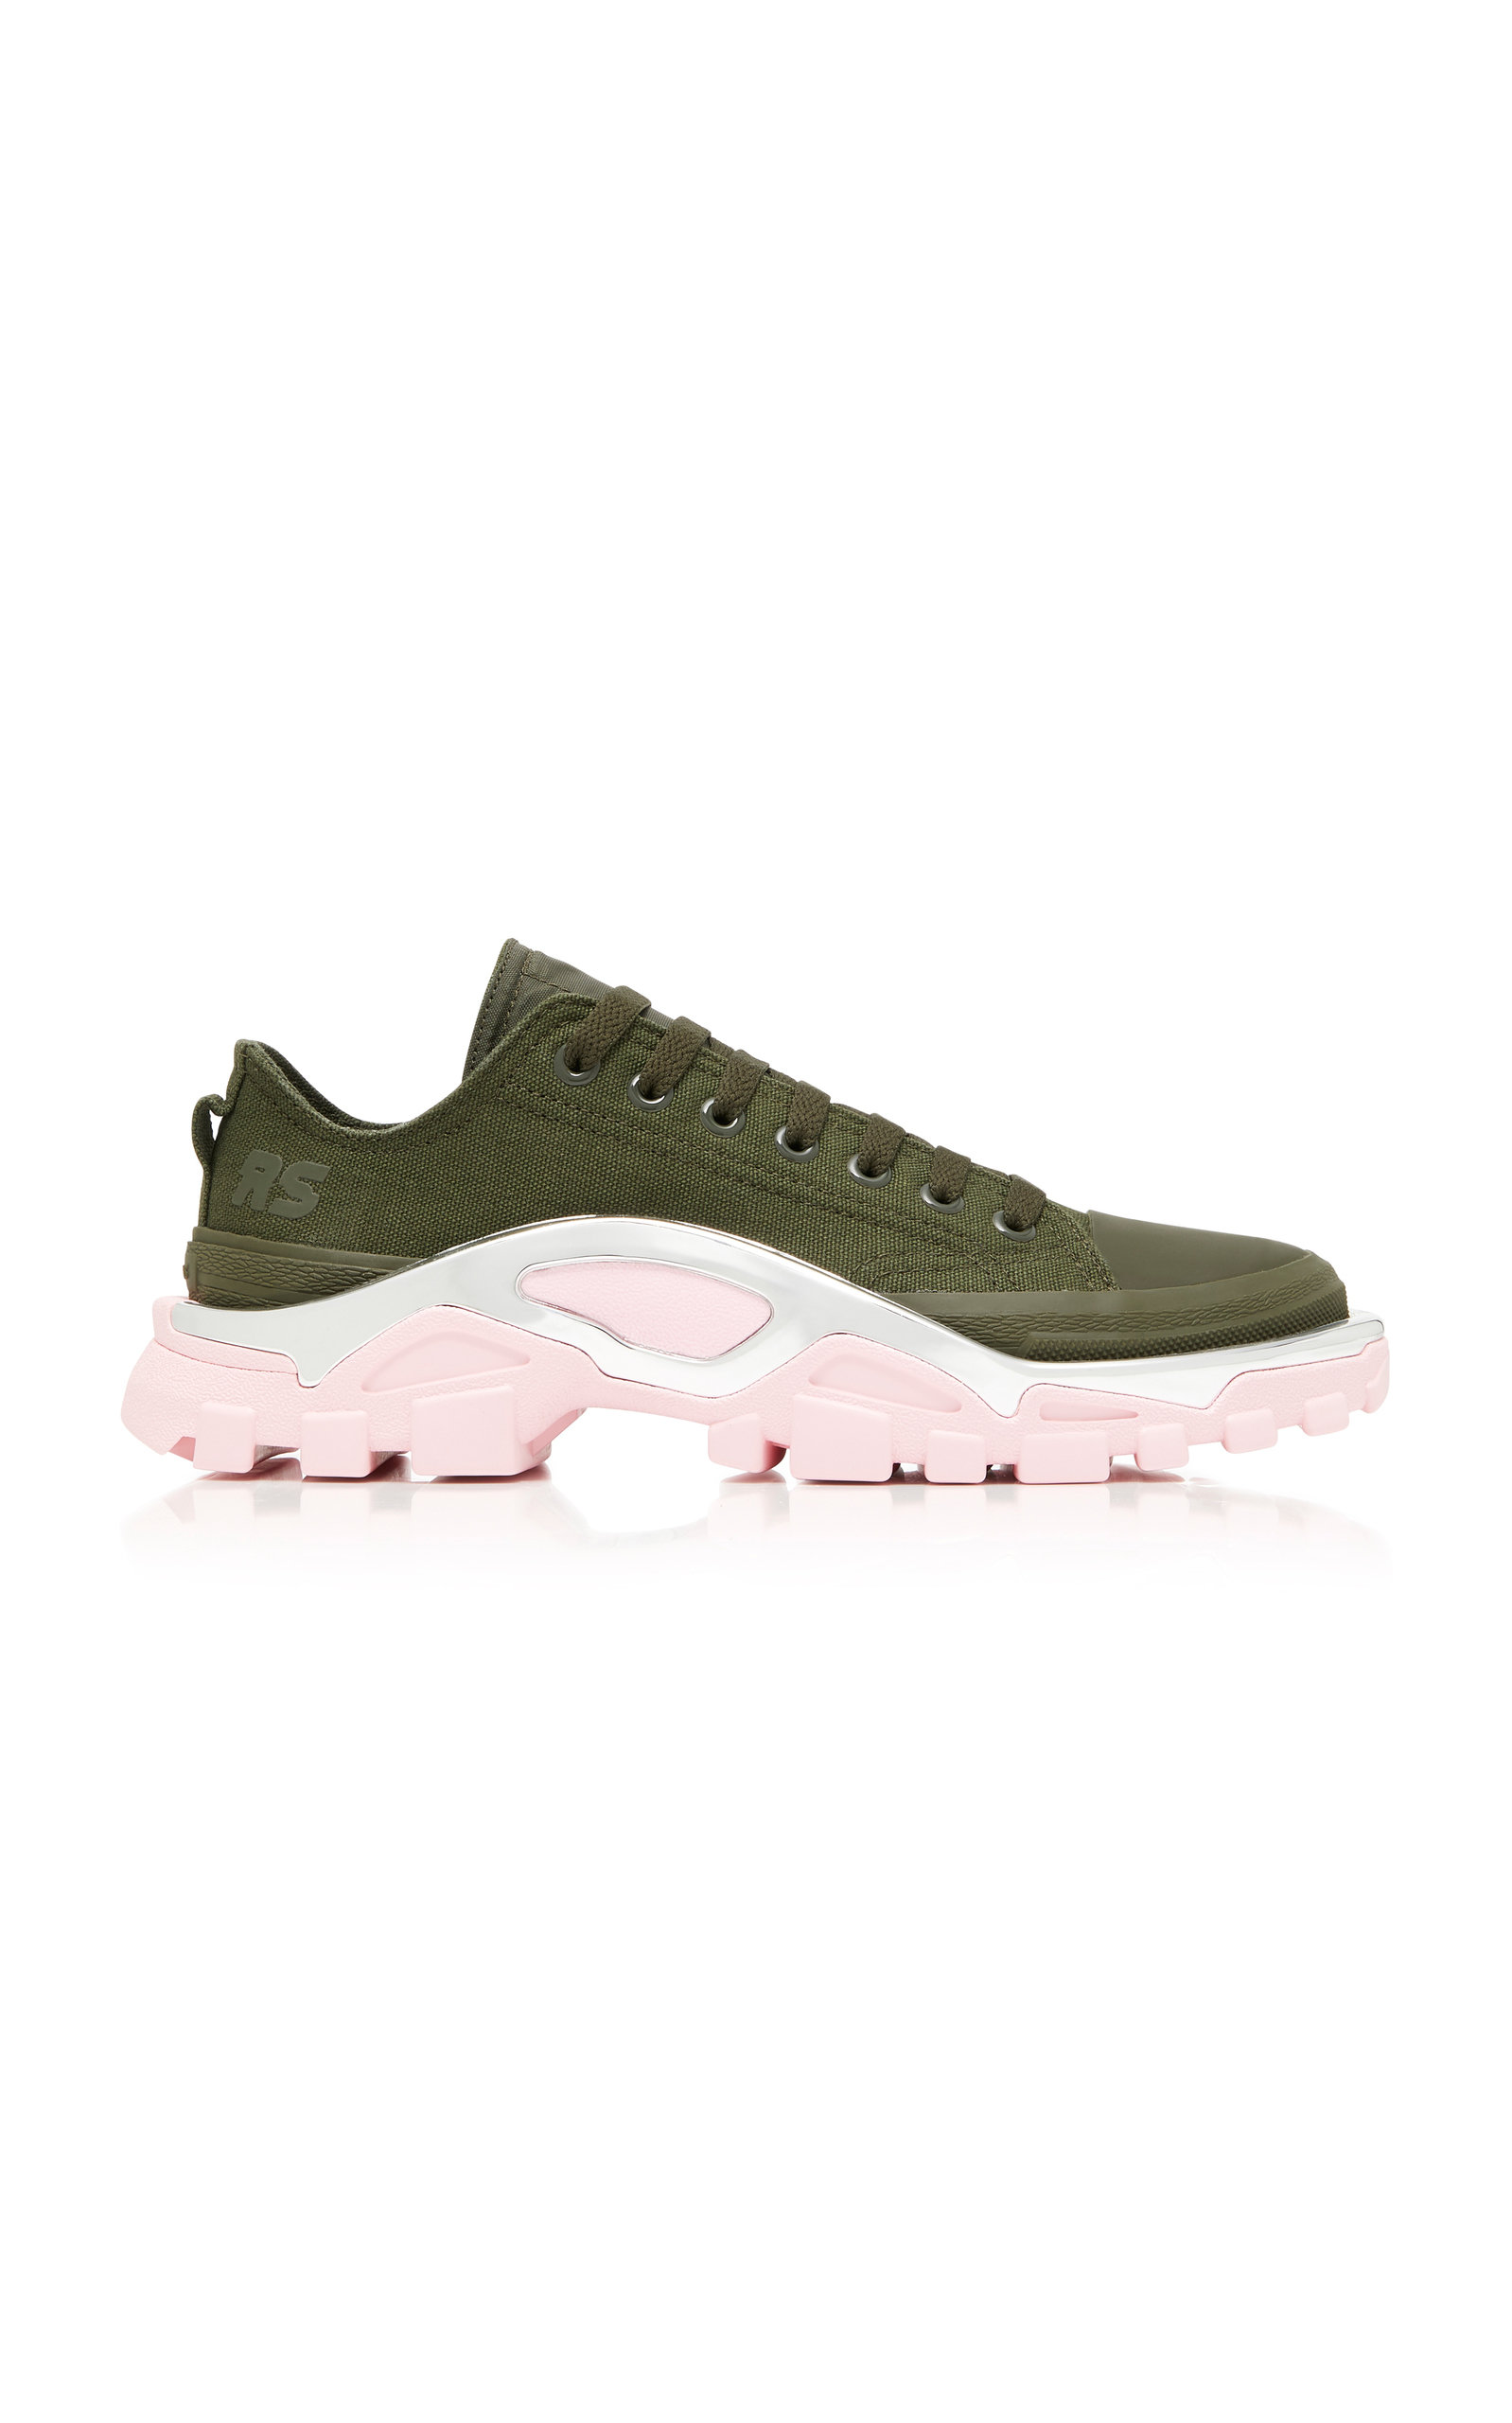 Raf Simons For Adidas Women'S Rs Detroit Runner Lace Up Sneakers, Green